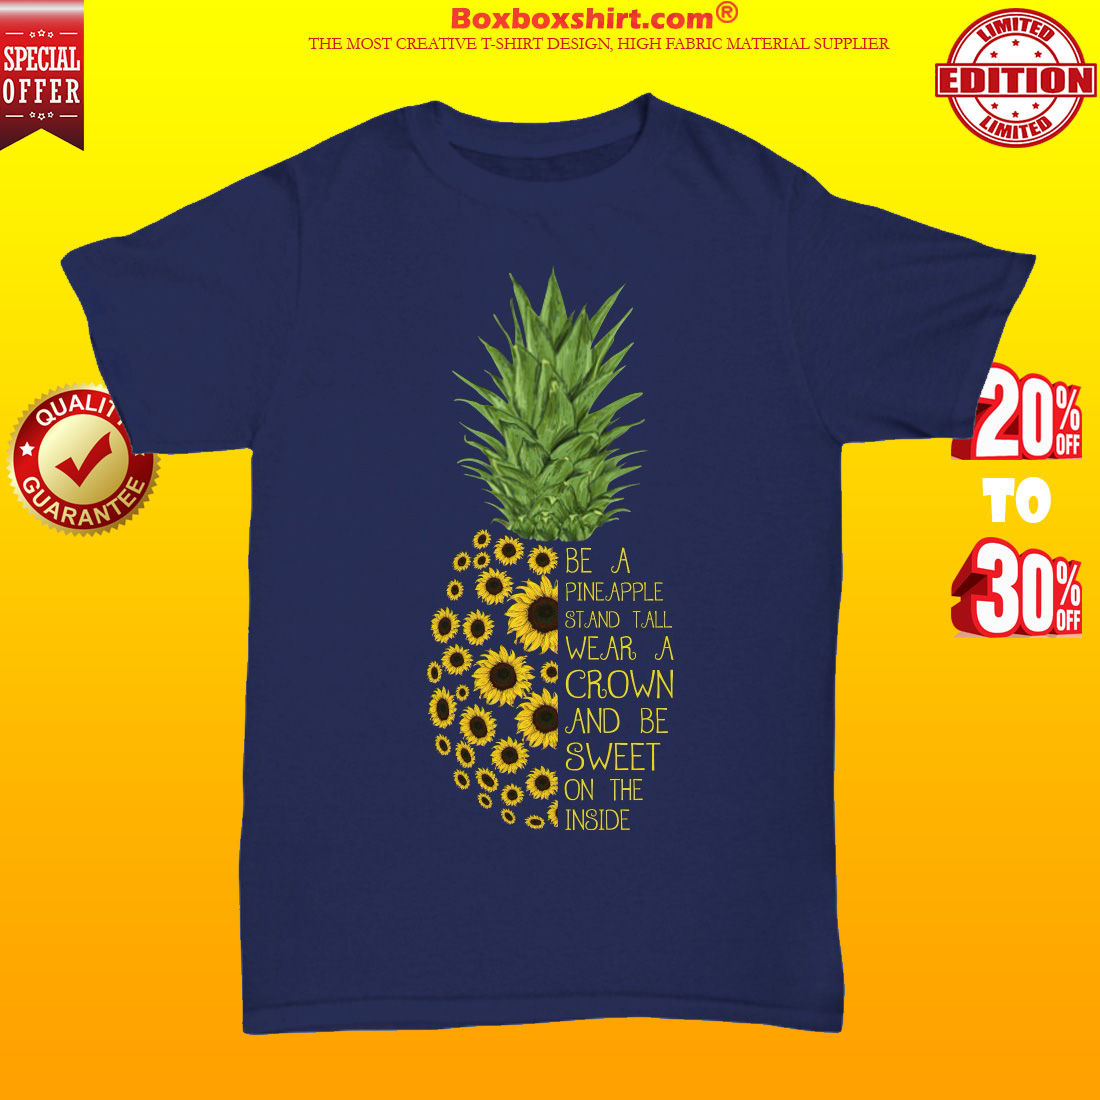 Be a pineapple stand tall wear a crown and be sweet on the inside unisex tee shirt